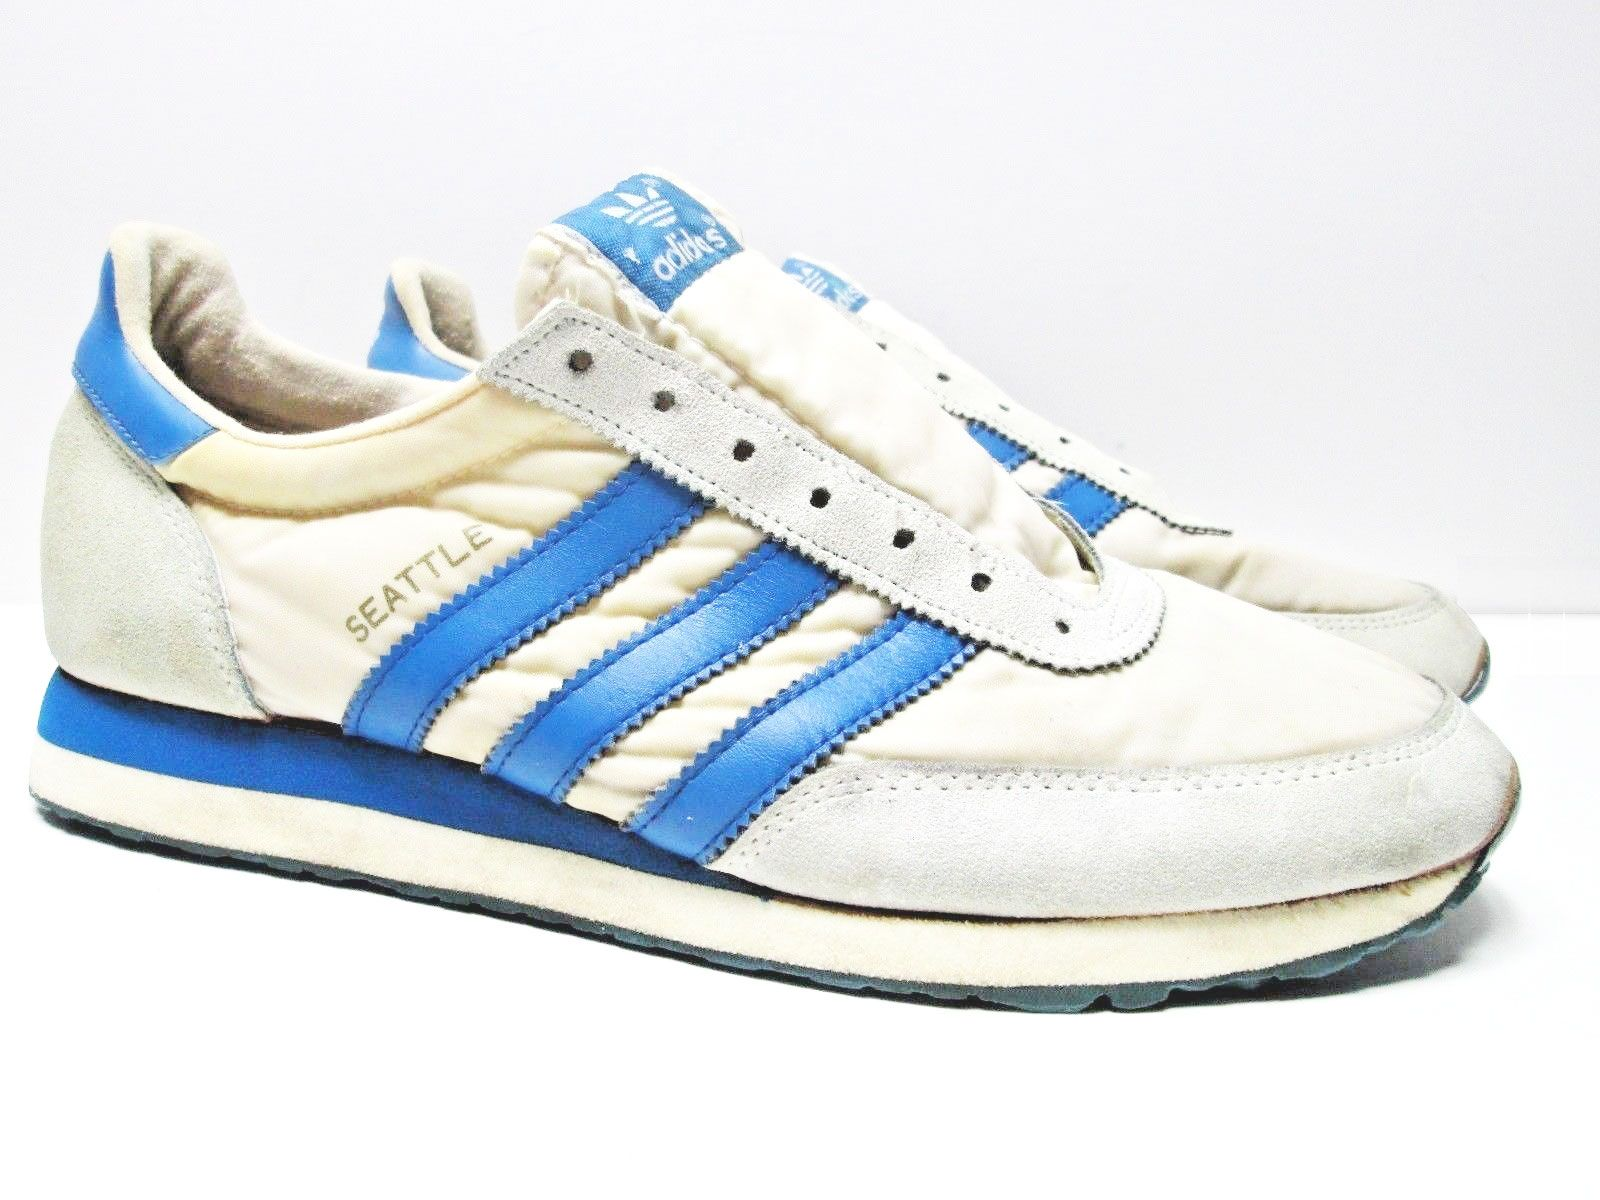 59167e06c627 Vintage 70s 80s Adidas Seattle sneakers 🔥